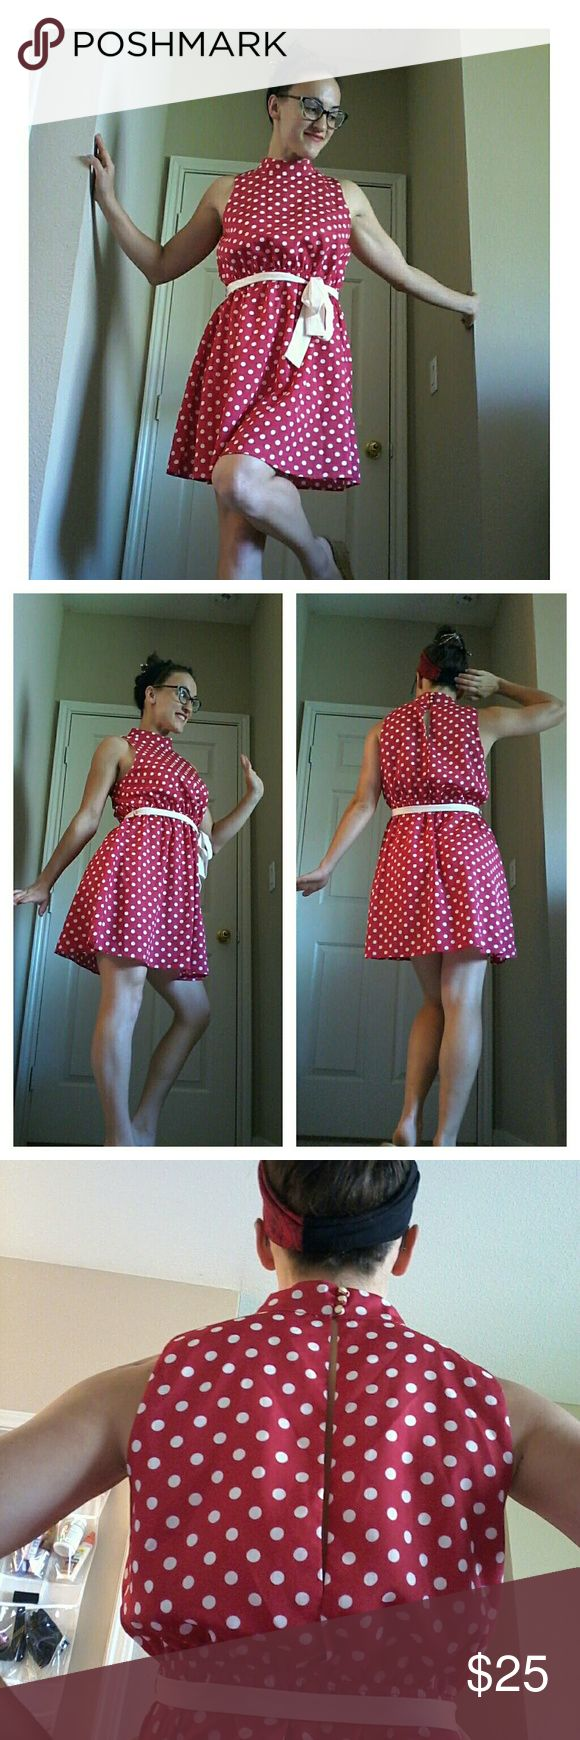 """Monteau Retro Pinup Dress Lightweight, silky red dress with white polkadots and sash. Flattering and playful - if Minnie Mouse were a pinup girl, she would wear this ;) I am 5'3.5"""" and a size 4 for reference. Tag says """"large"""" - I think this would best suit a size 6-8. ModCloth Dresses Mini"""